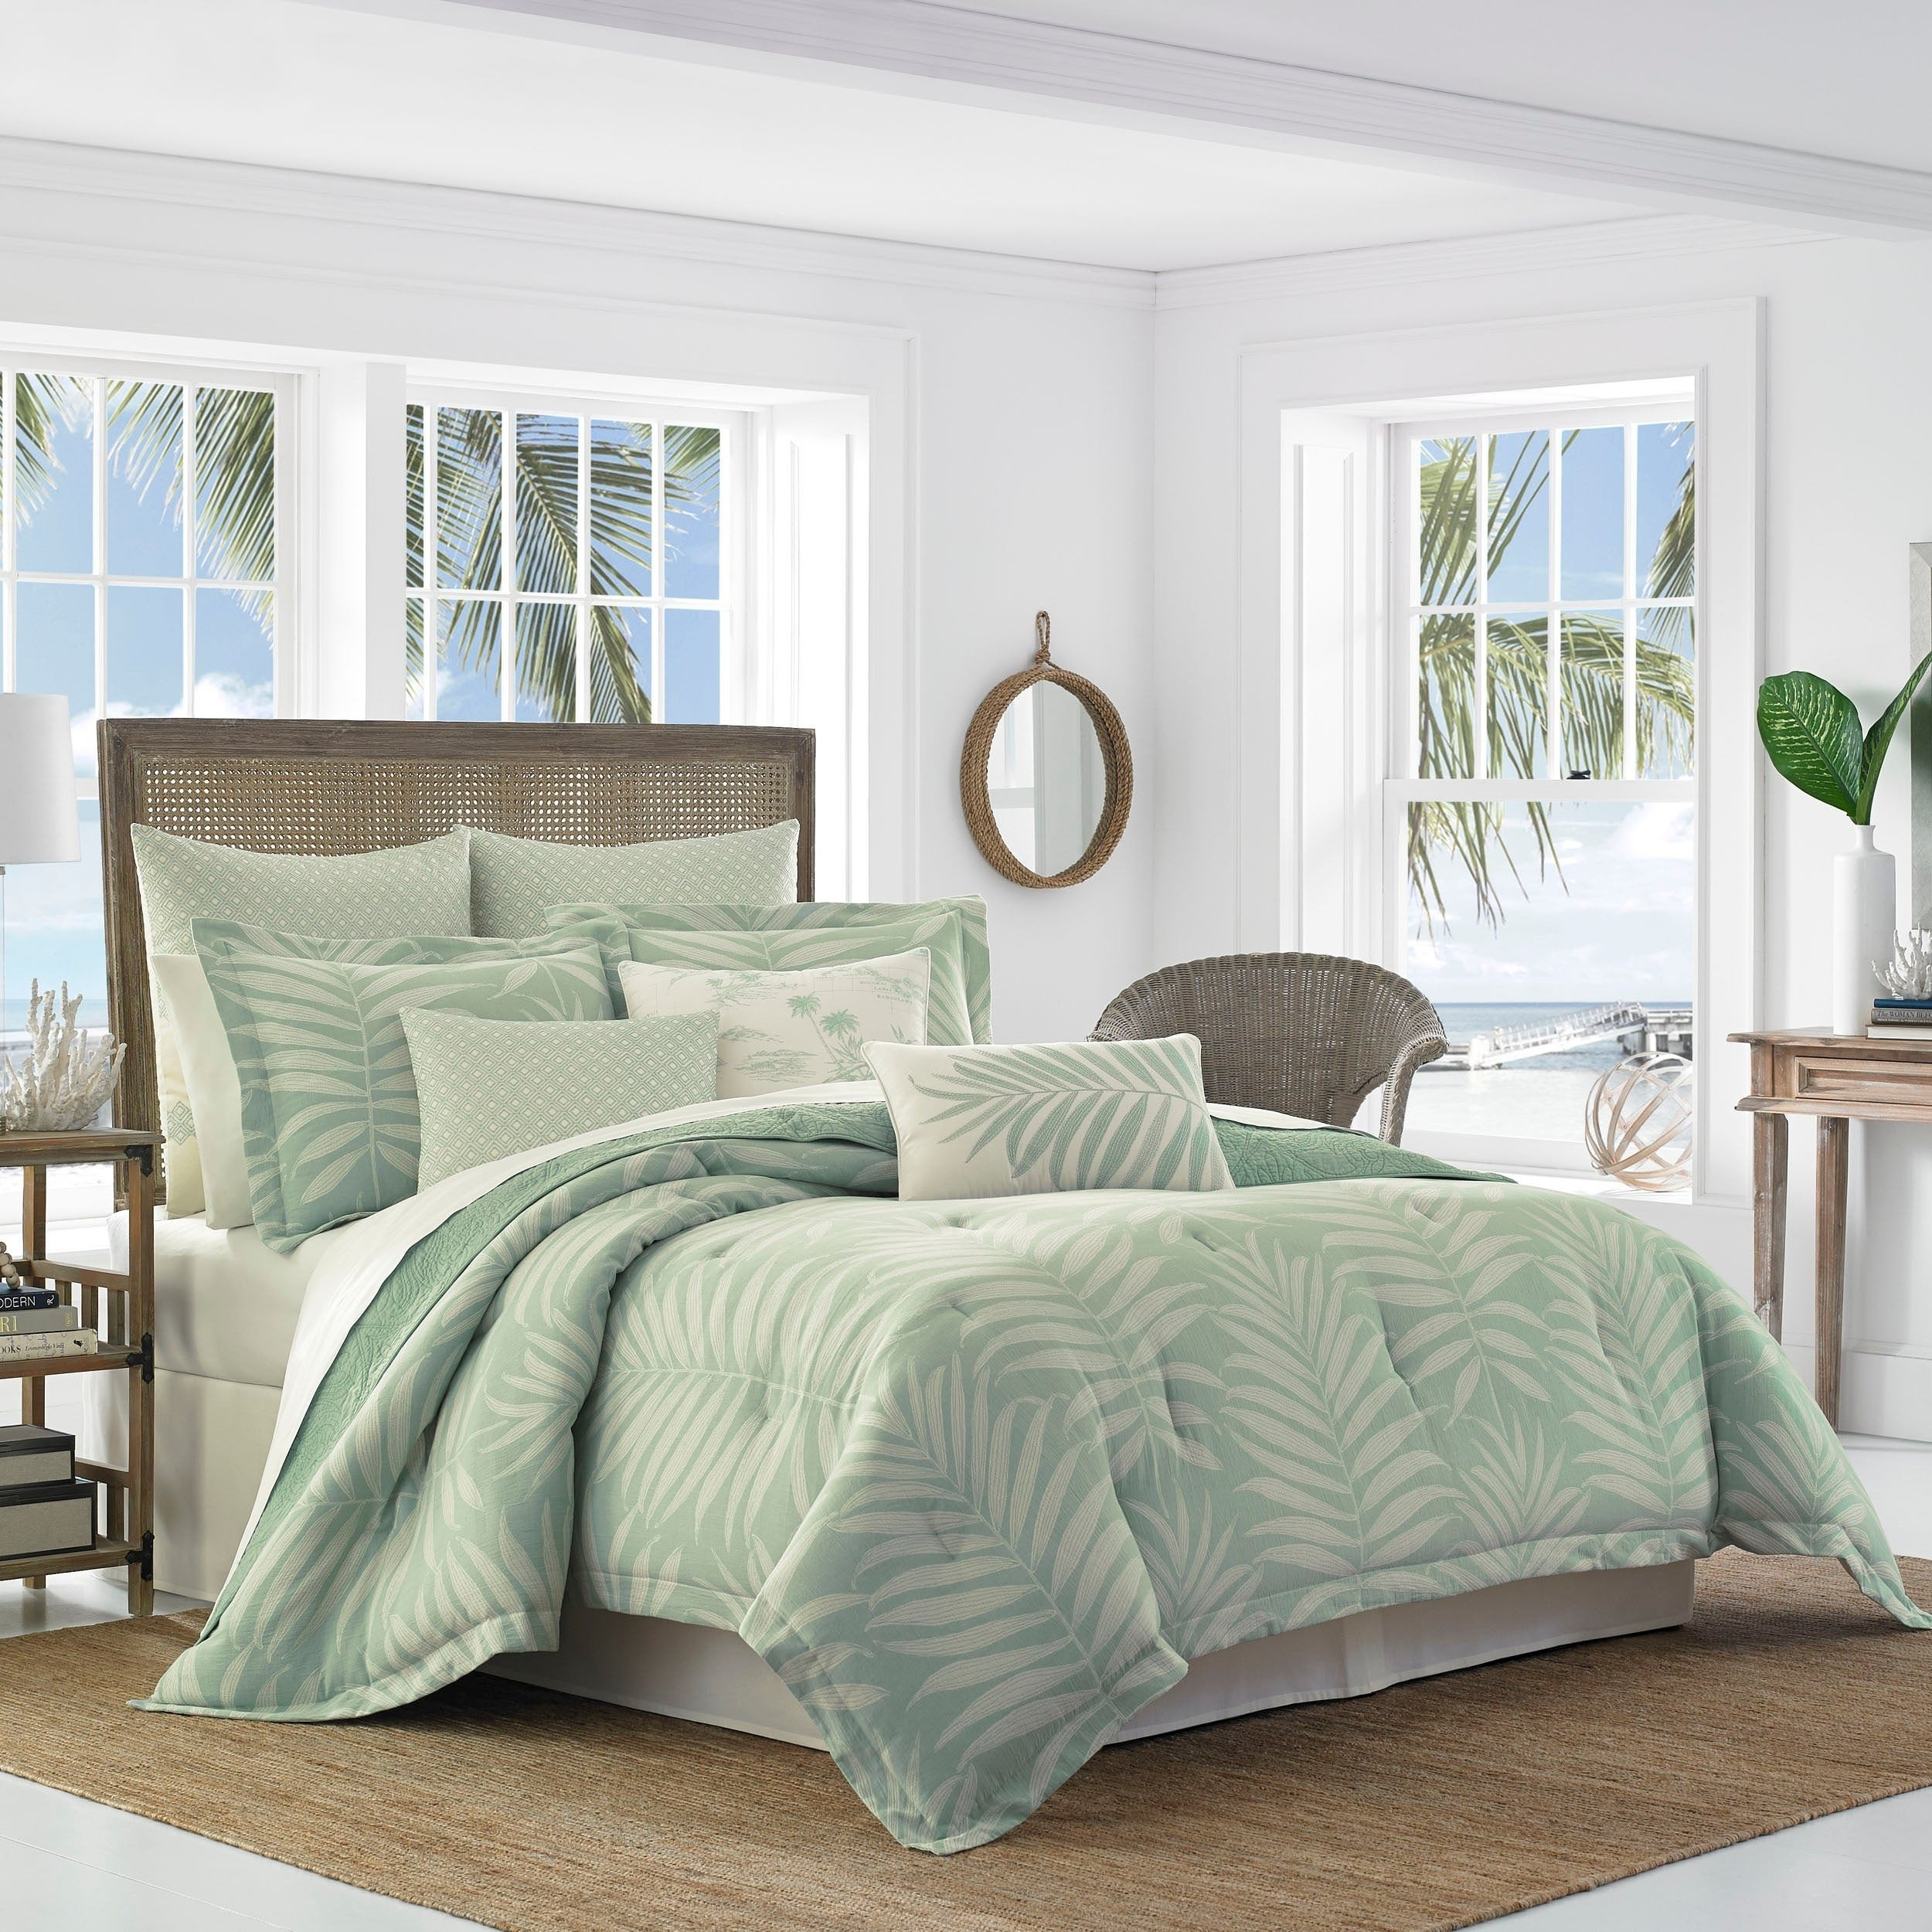 Tommy Bahama Bedroom Furniture Inspirational tommy Bahama Abacos forter Set